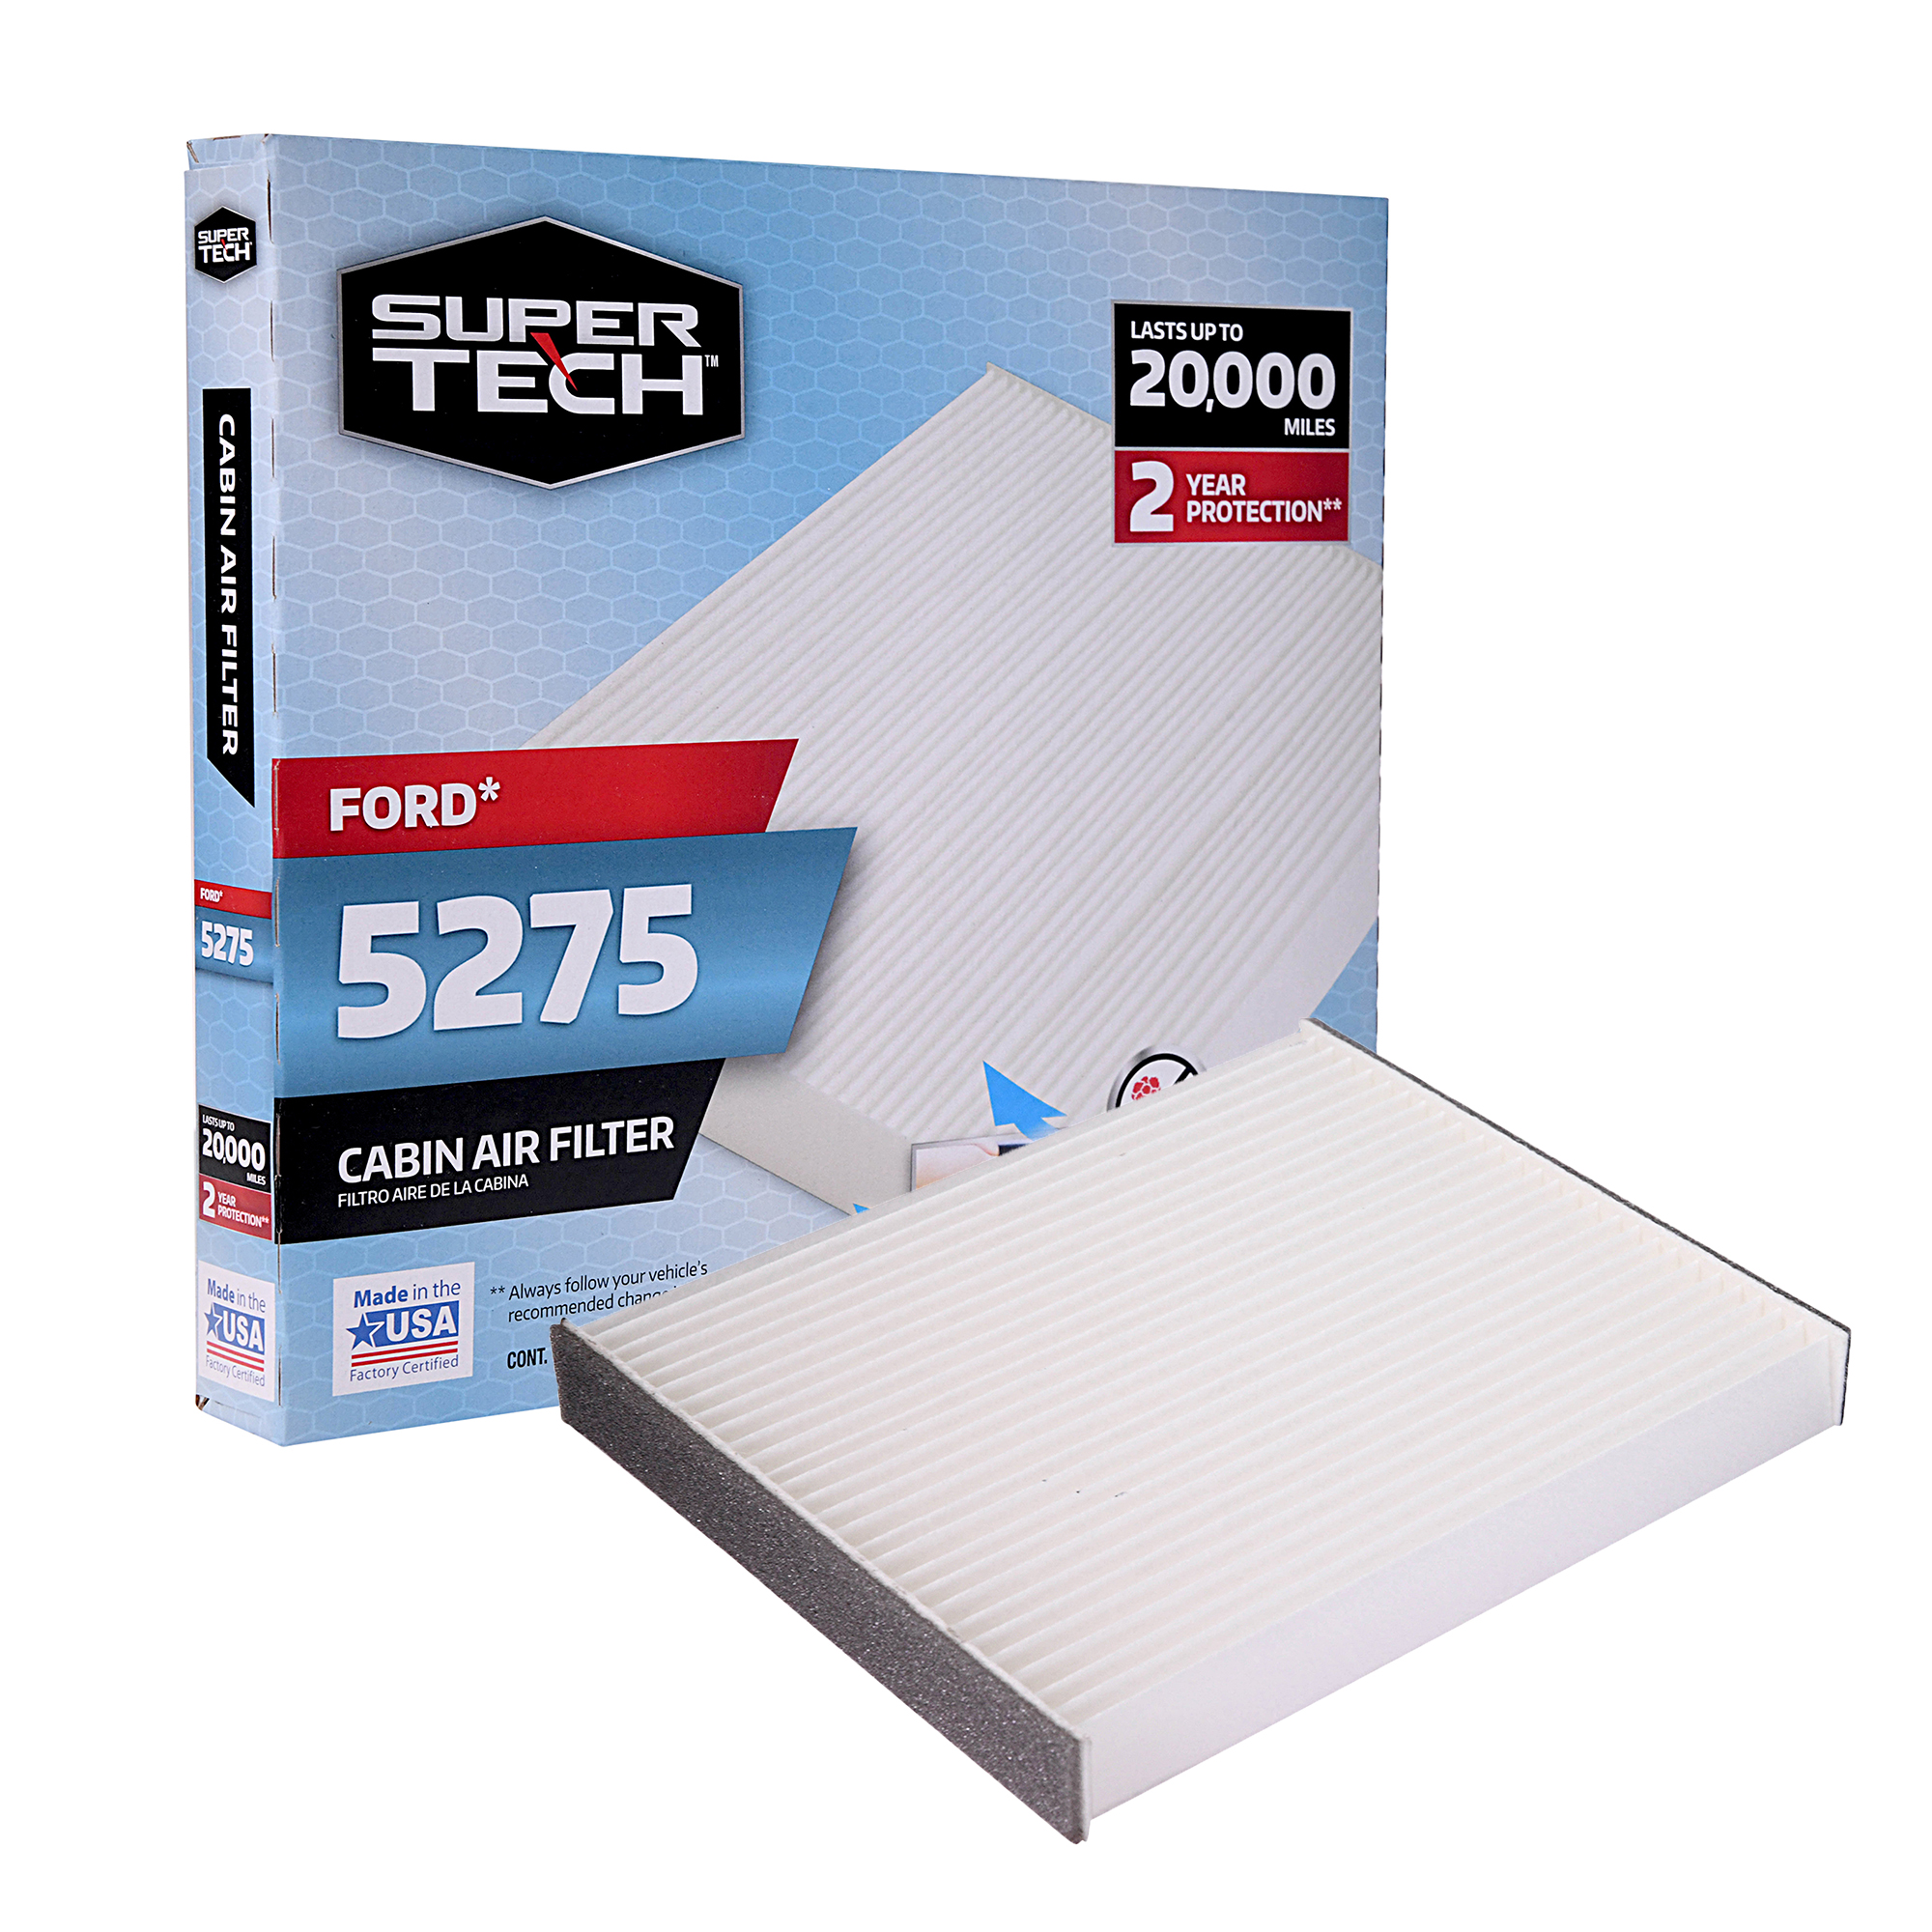 SuperTech Cabin Air Filter 5275, Replacement Air/Dust Filter for Ford